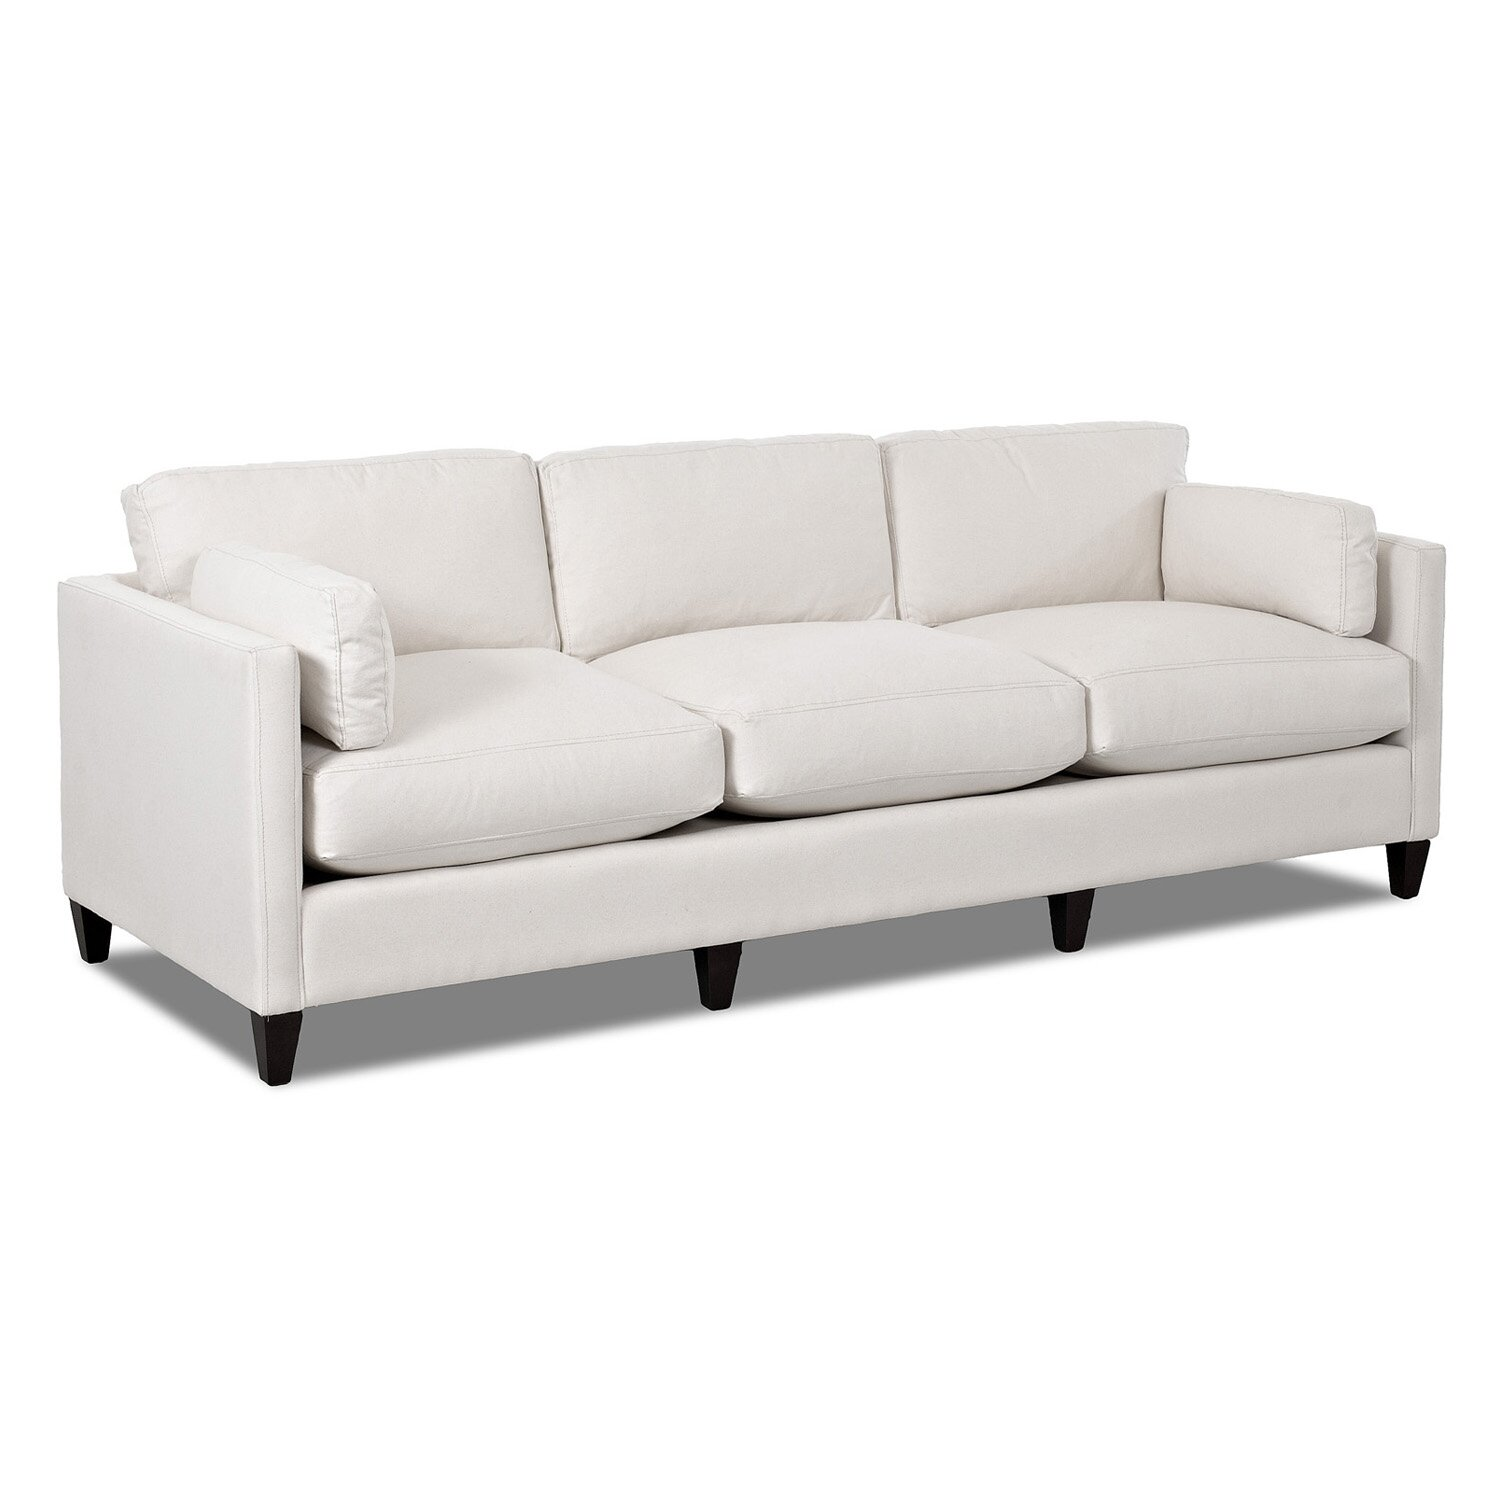 Wayfair Custom Upholstery Caroline Sofa amp Reviews Wayfair : Wayfair Custom Upholstery Caroline Sofa CSTM1253 from www.wayfair.com size 1500 x 1500 jpeg 131kB